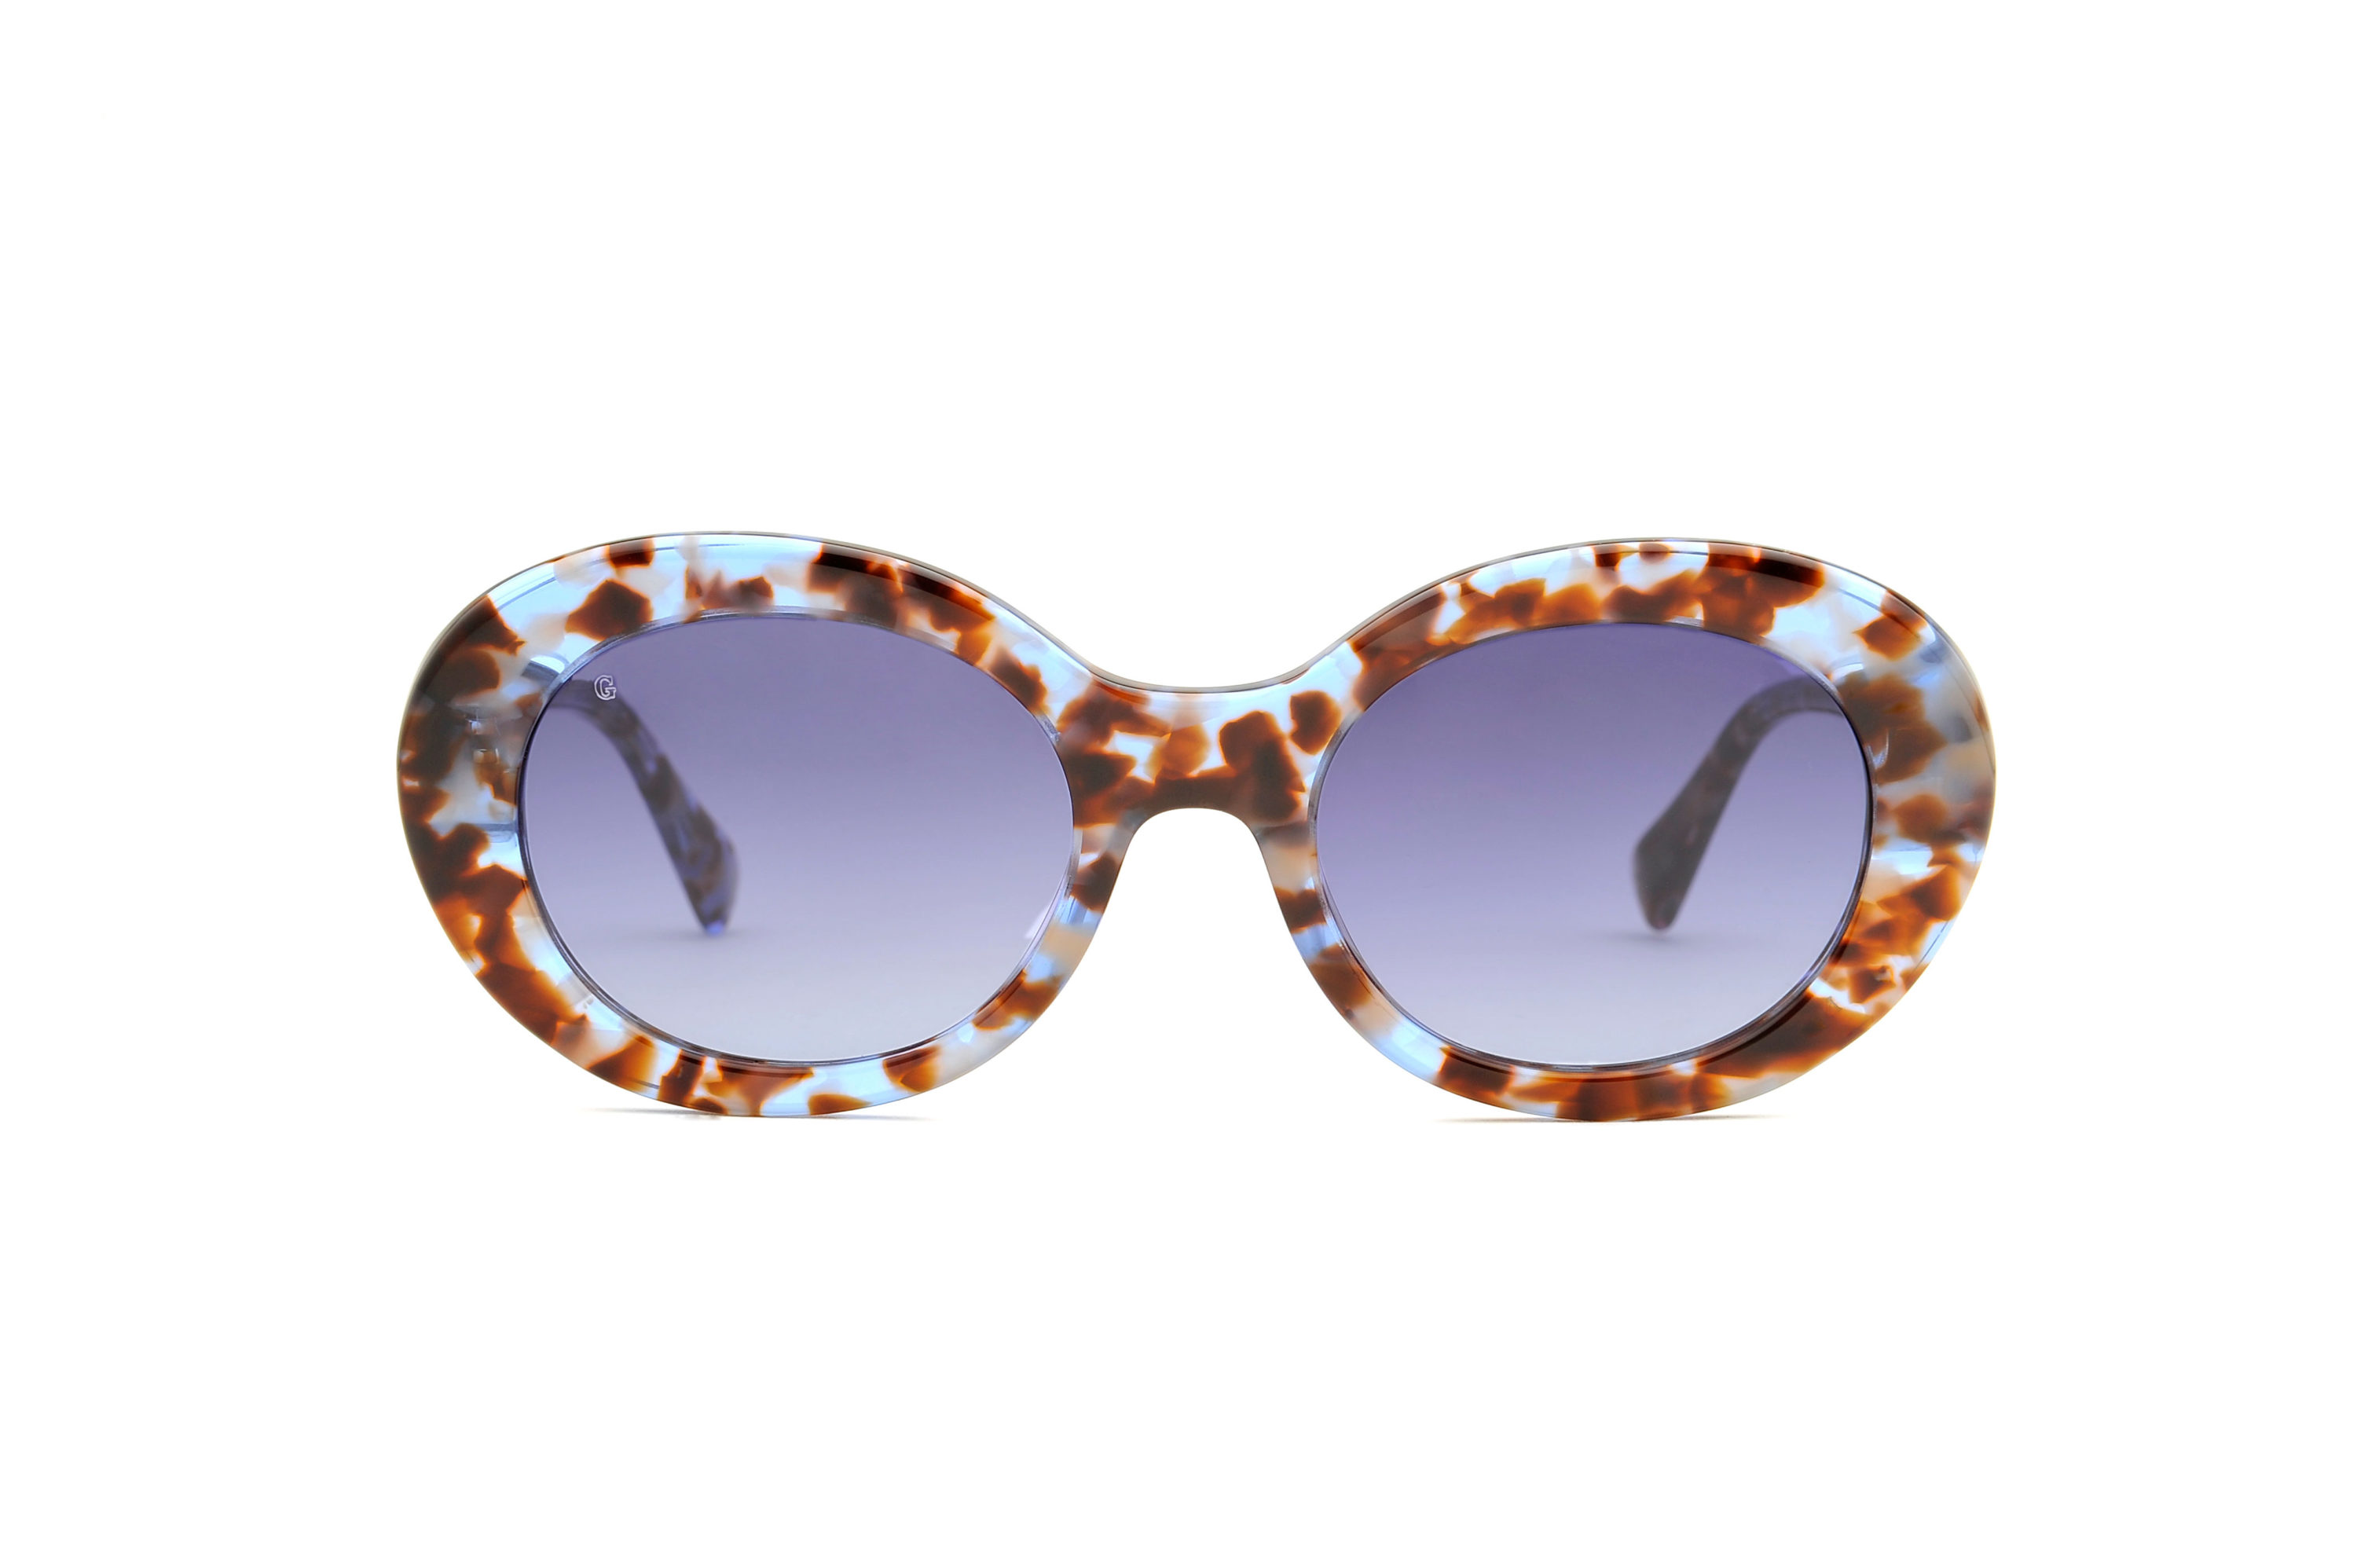 Nika acetate rounded blue sunglasses by GIGI Studios